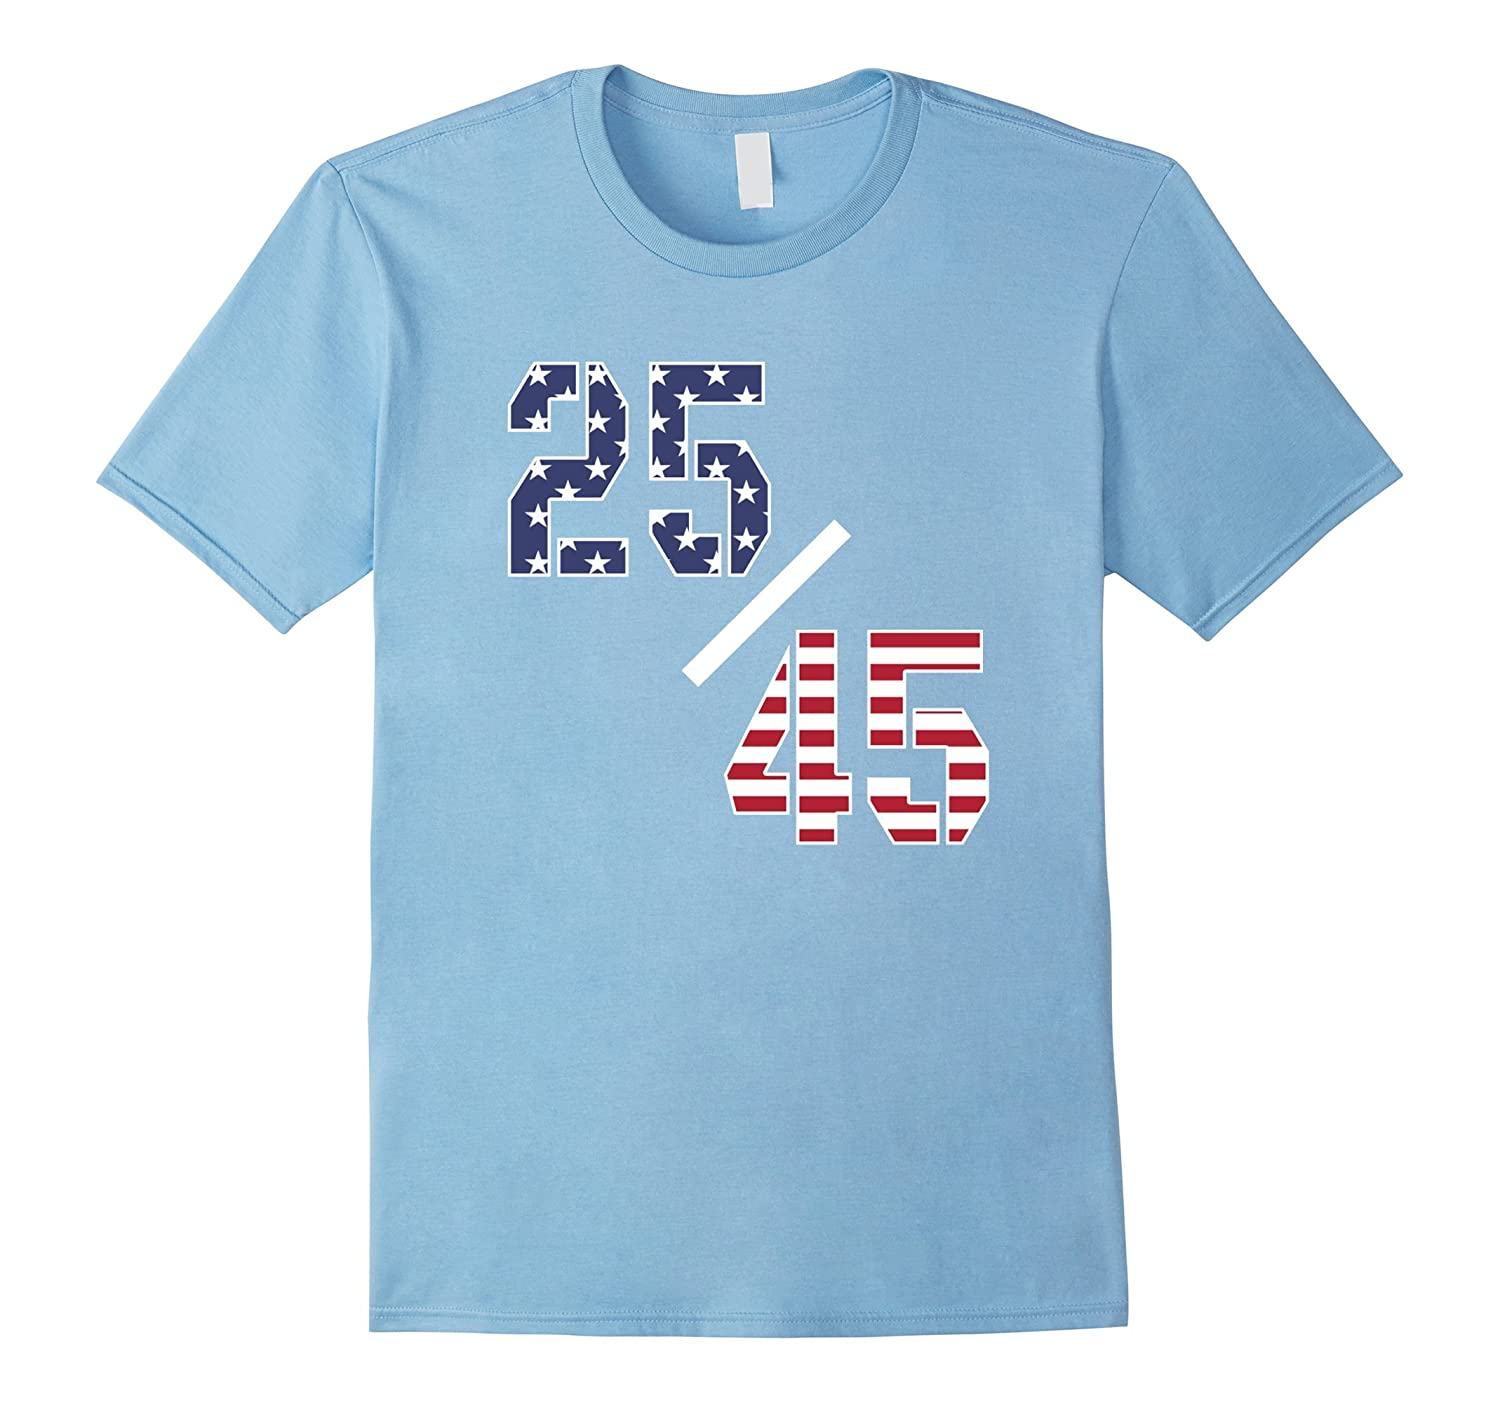 25/45 Impeach Tshirt Great gift idea-BN